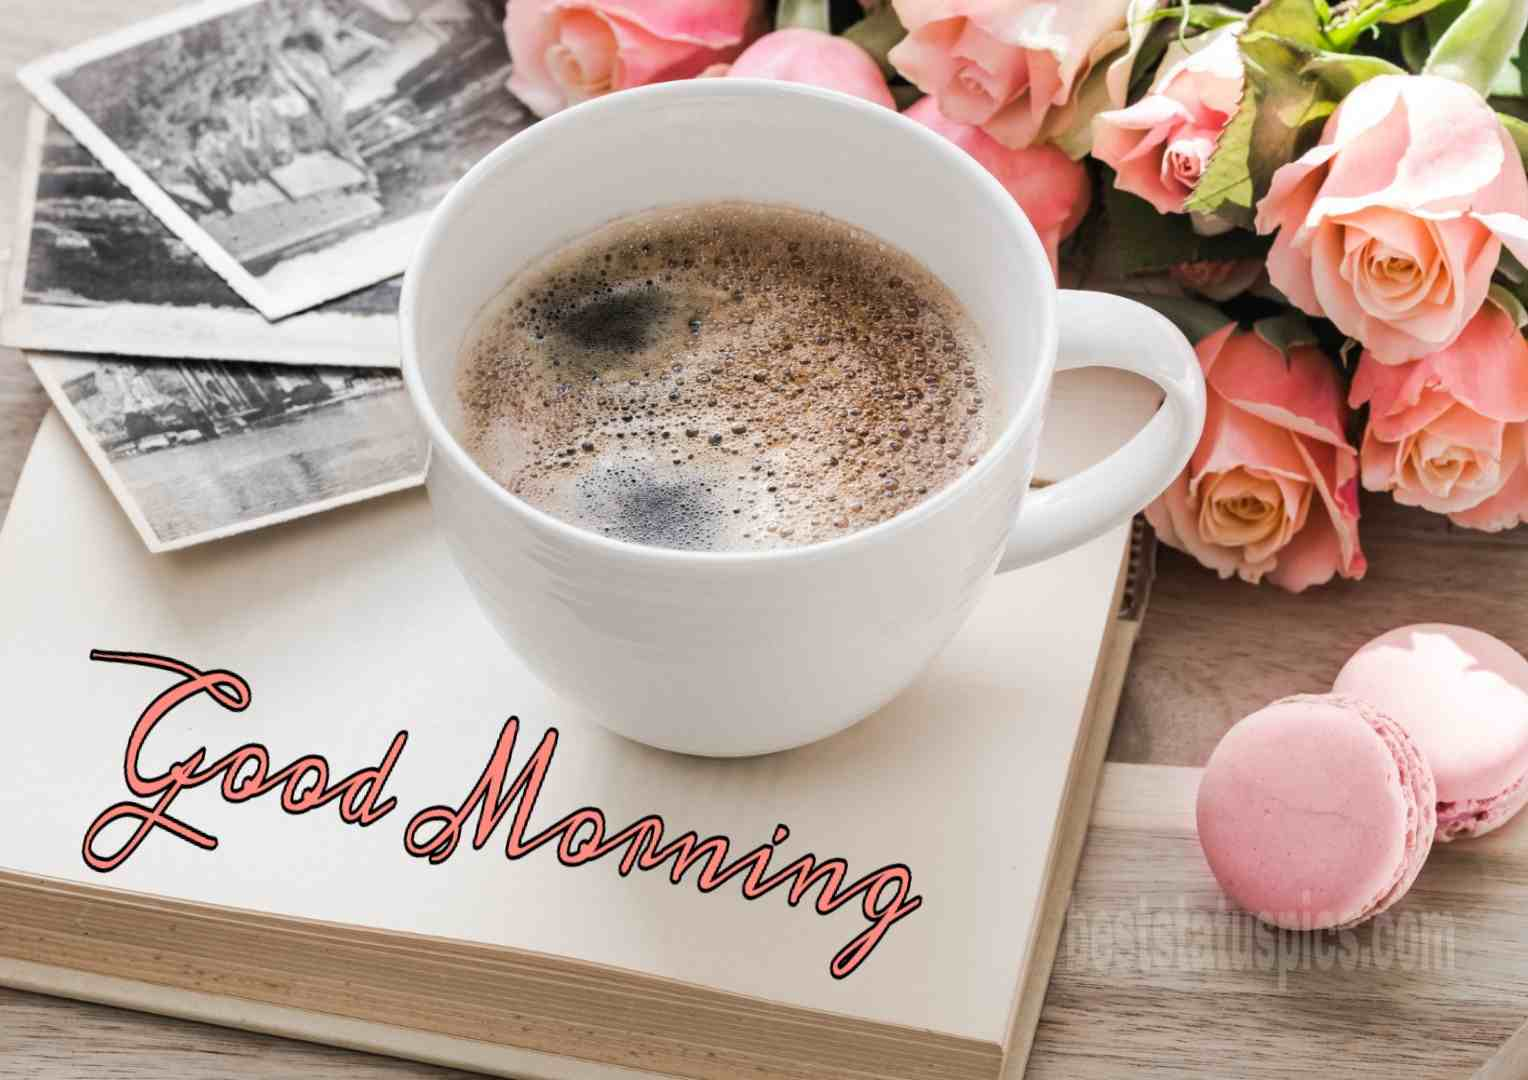 whatsapp dp good morning gm coffee with rose flowers